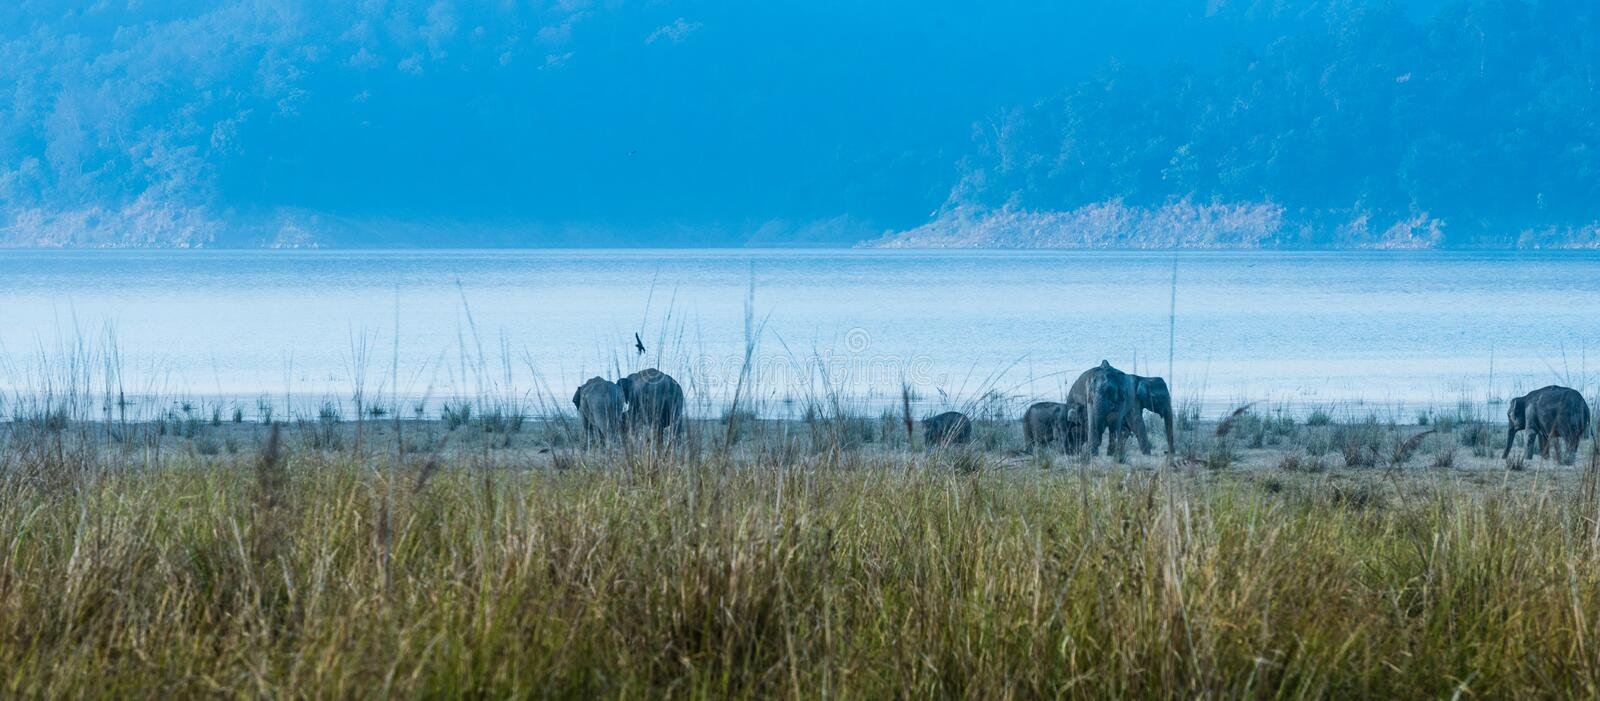 Land of Elephants at Jim Corbett stock photos